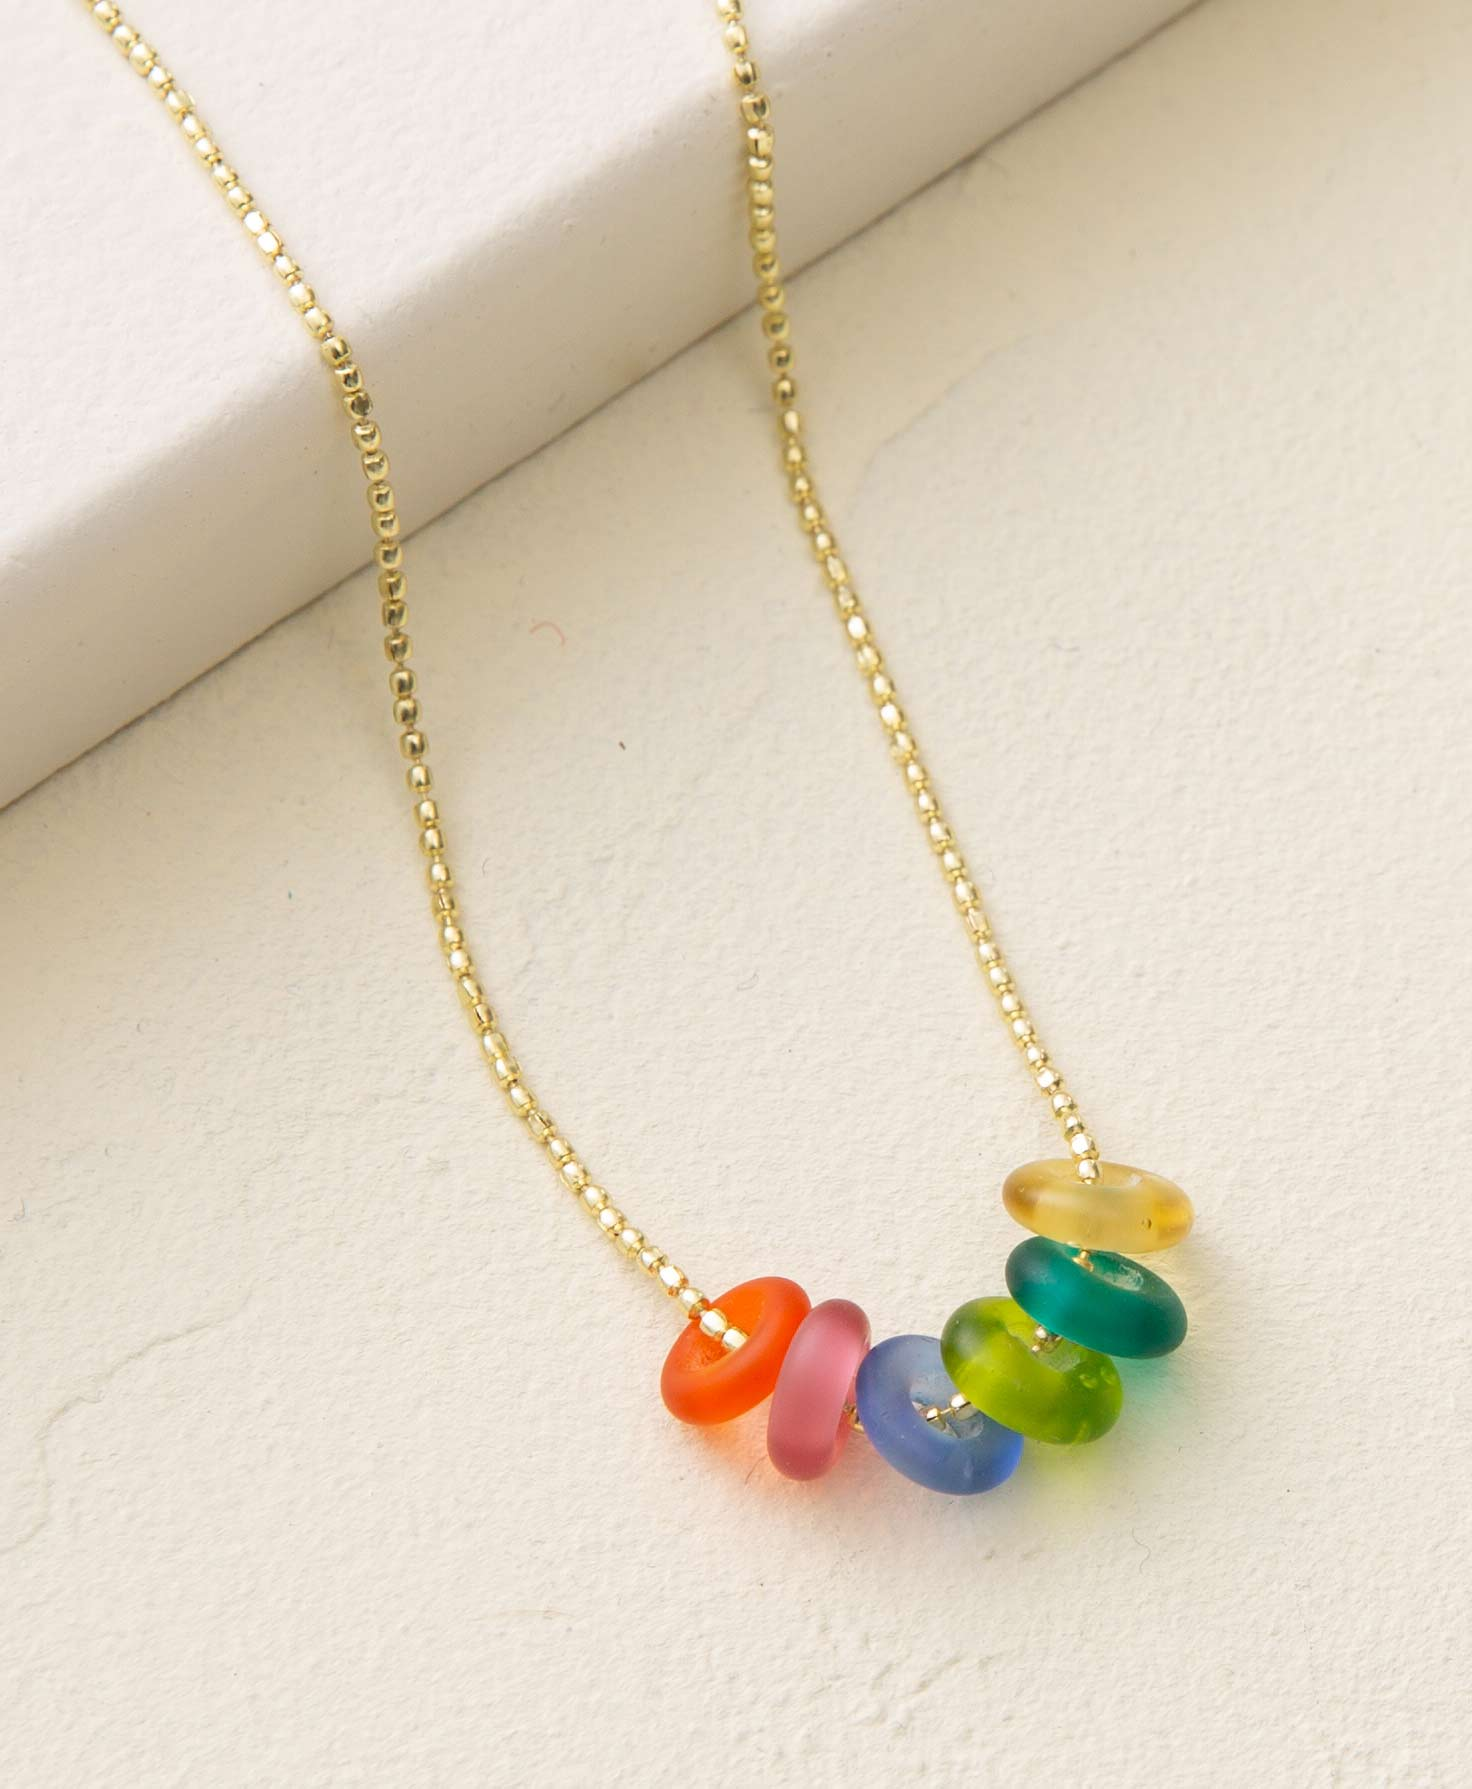 The Orb Necklace lays on a cream-colored surface. It has a dainty gold, ball-style chain. Strung onto the chain are six small, doughnut-shaped glass beads. The colors of the beads are: orange, pink, blue, lime, green, and yellow. They are semi-transparent and resemble sea-glass.